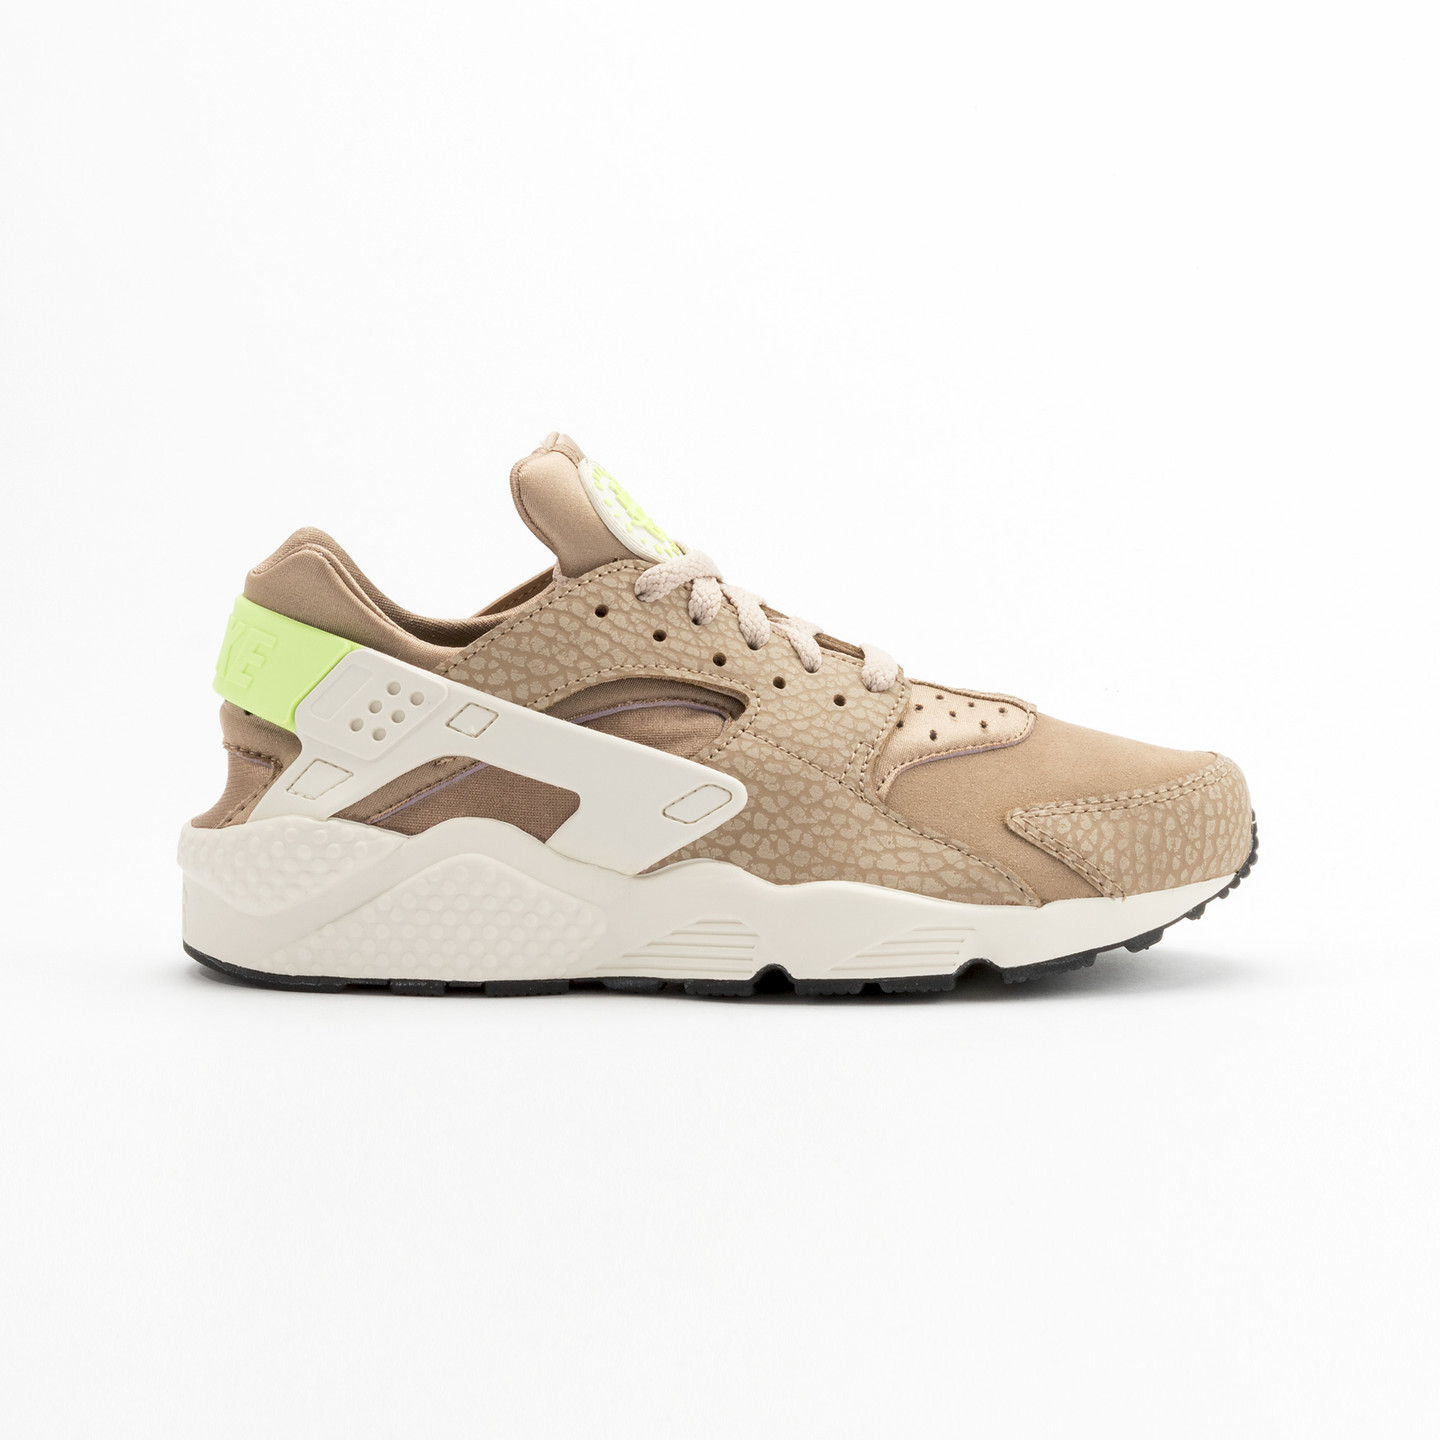 Nike Air Huarache Run Premium Desert Camo / Sea Glass / Ghost Green 704830-203-41